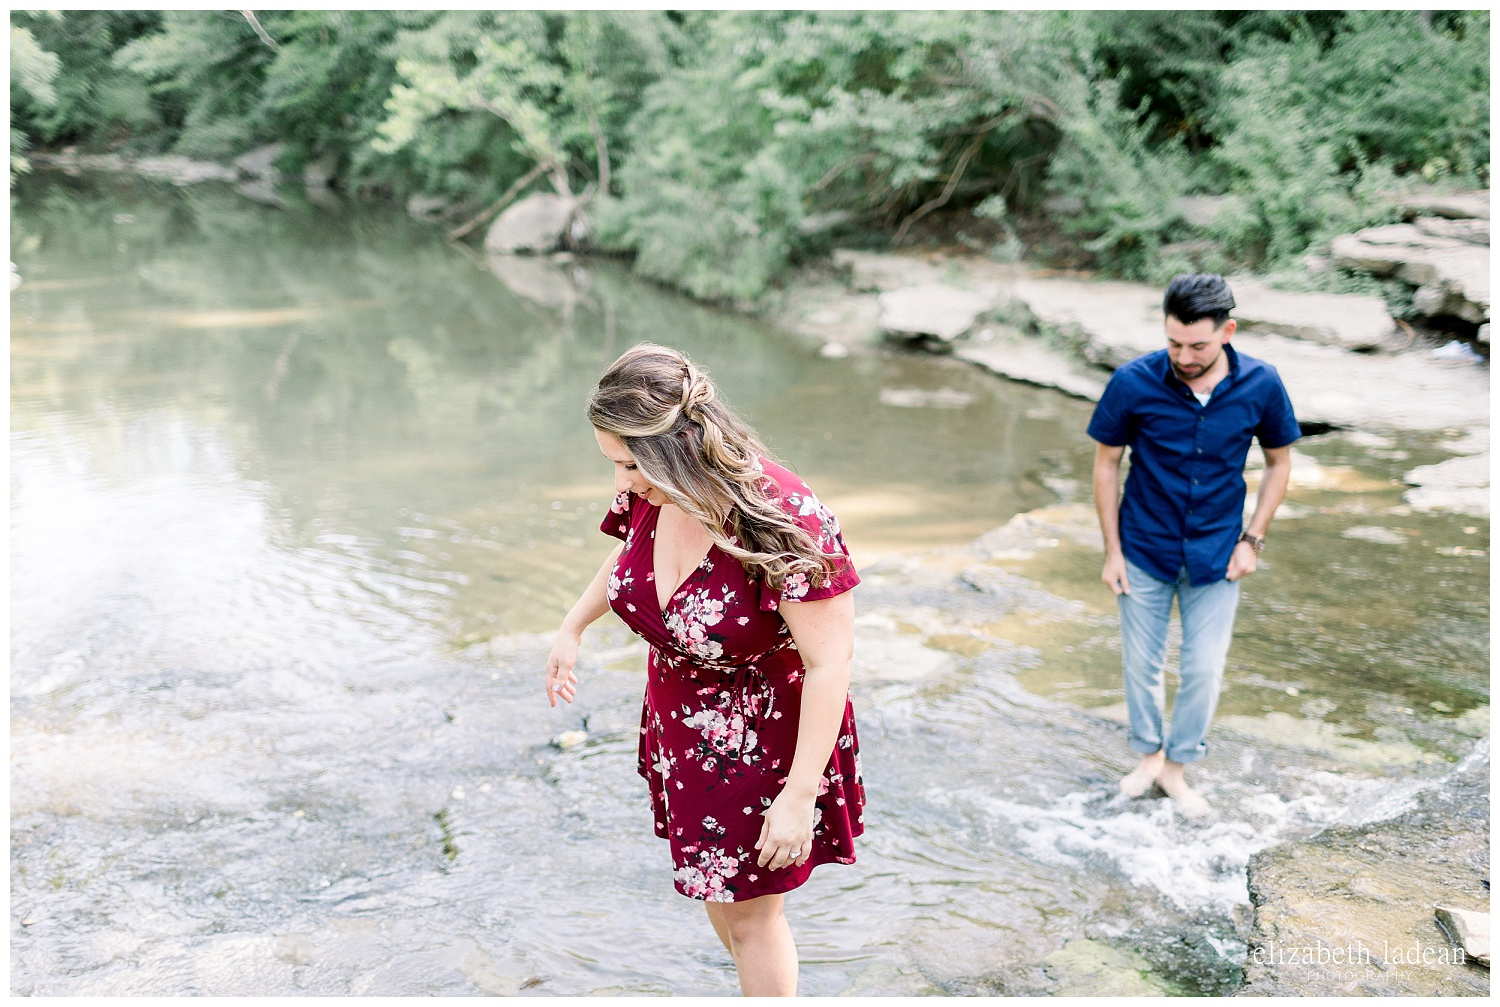 adventurous-engagement-photography-kansas-city-J+R2018-elizabeth-ladean-photography-photo-_9517.jpg